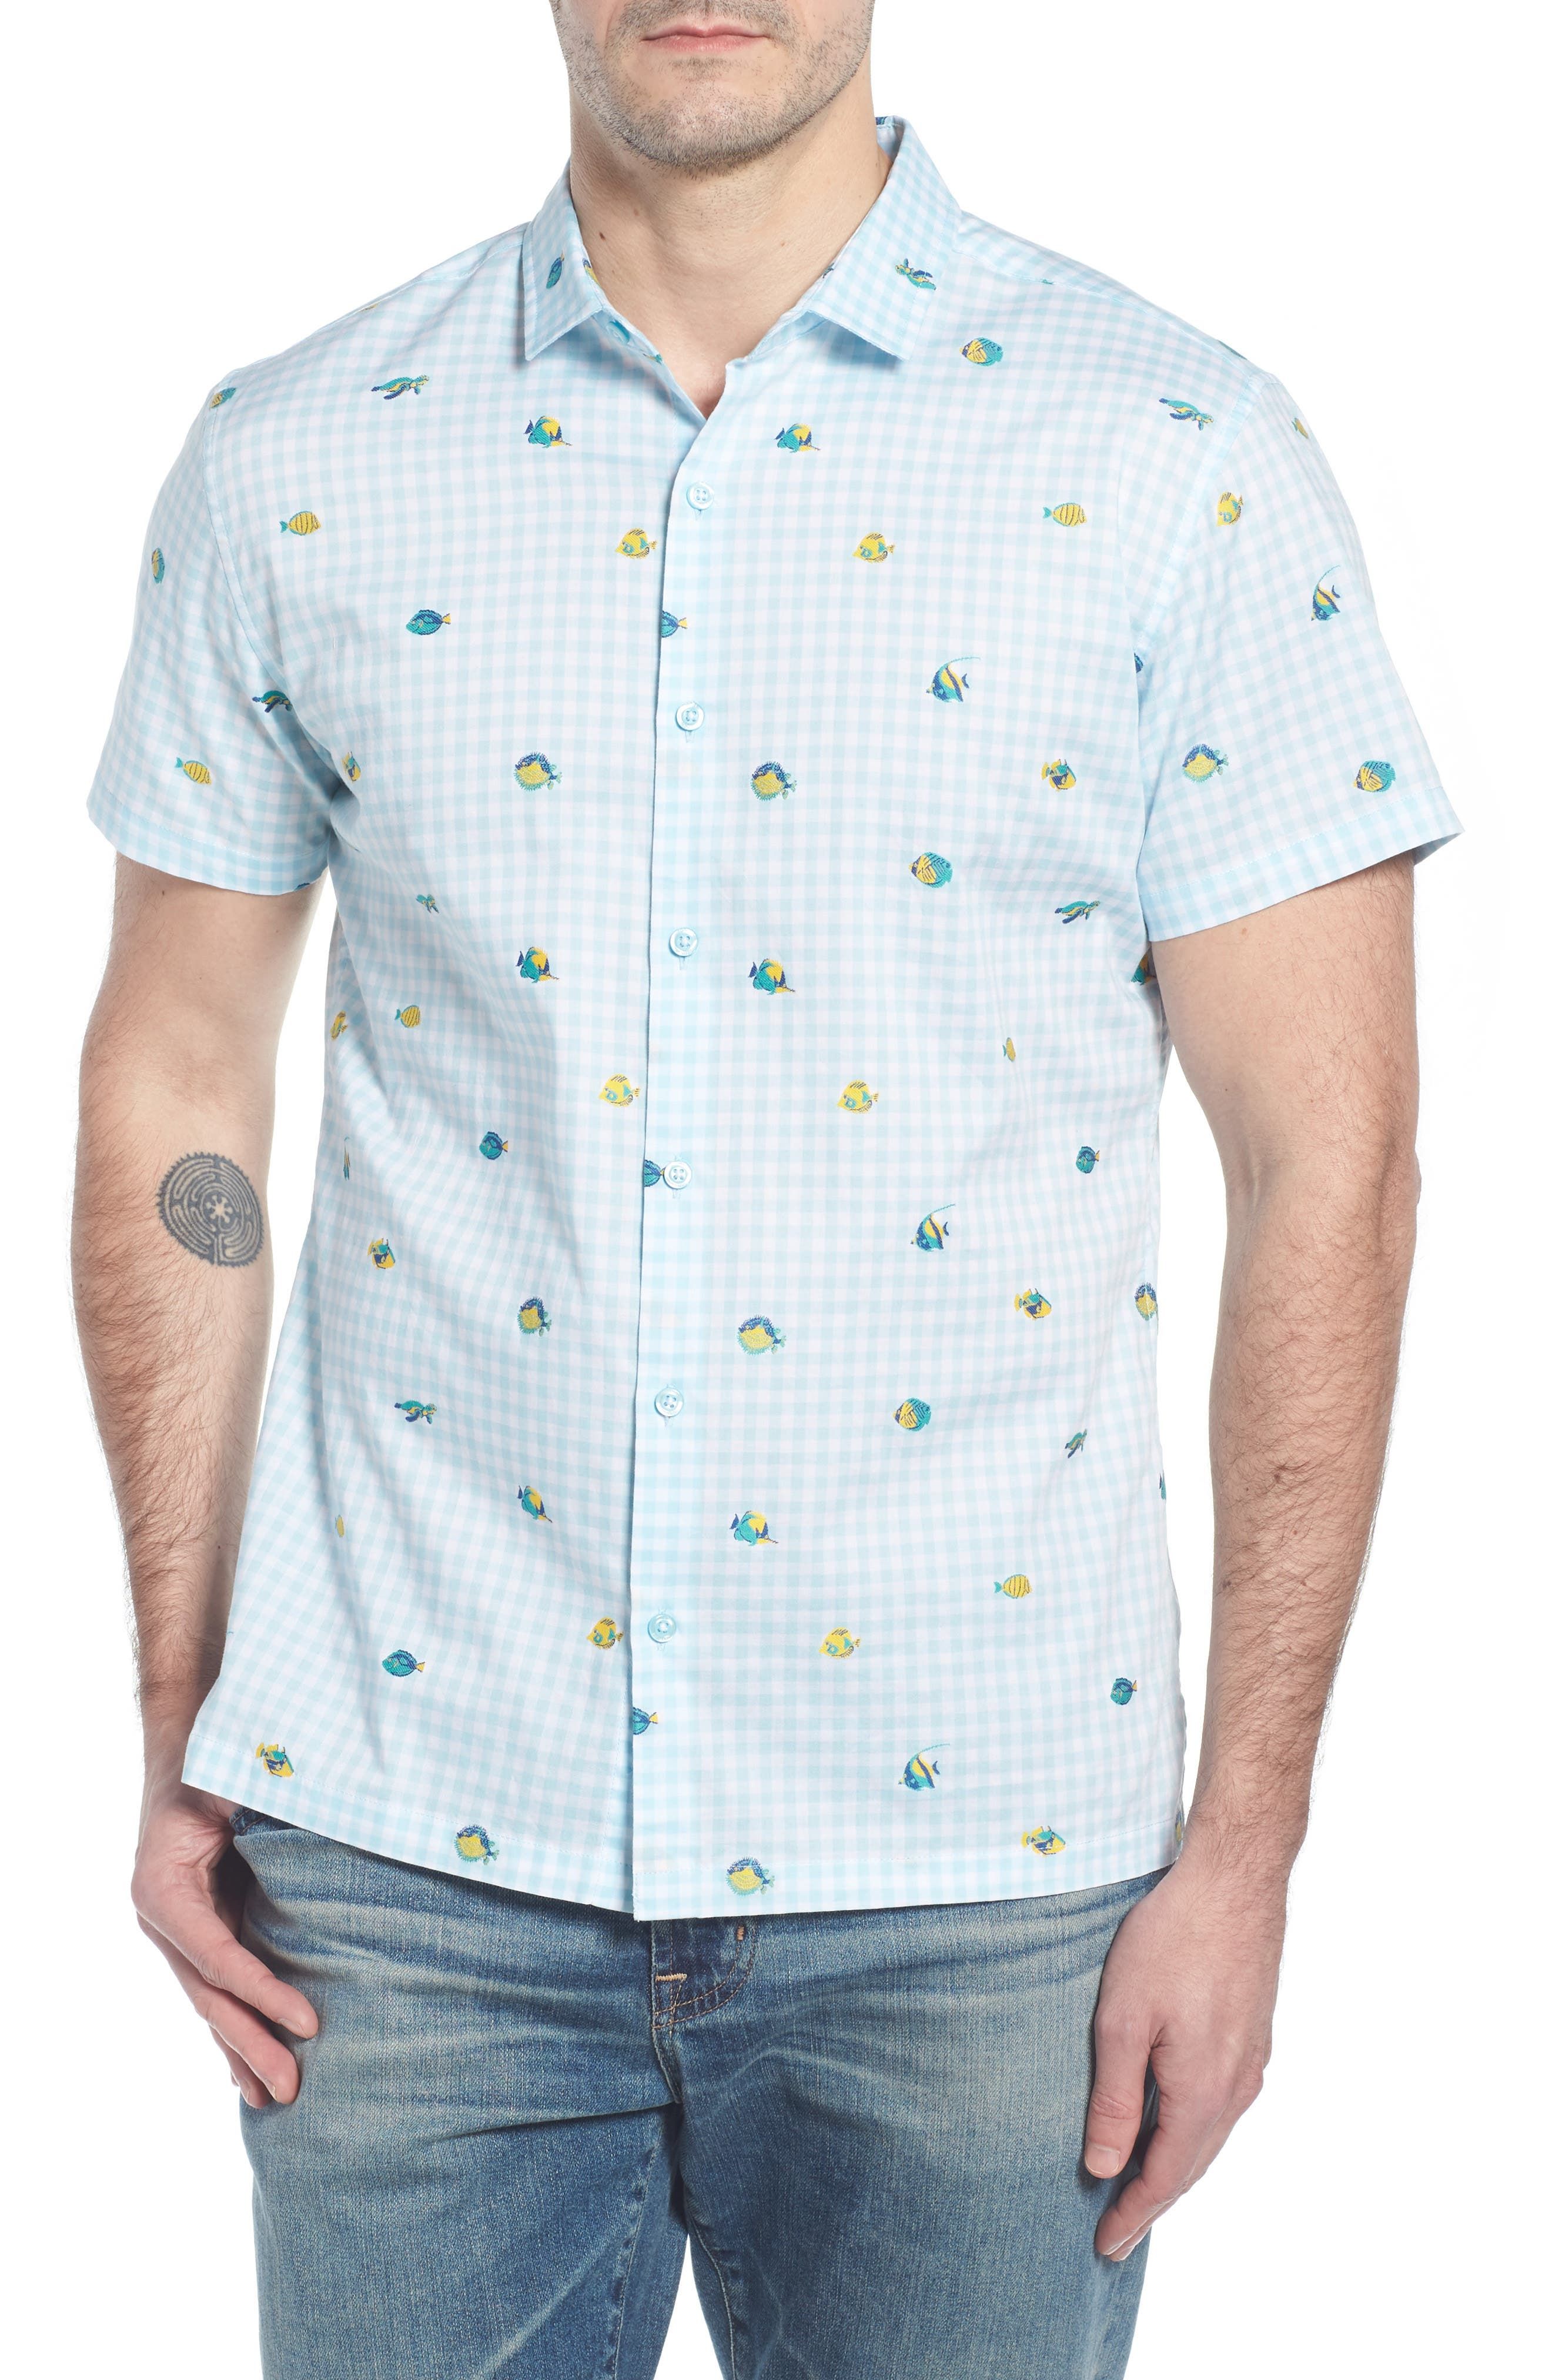 Picnic Reef Trim Fit Embroidered Camp Shirt,                             Main thumbnail 1, color,                             Sky Blue